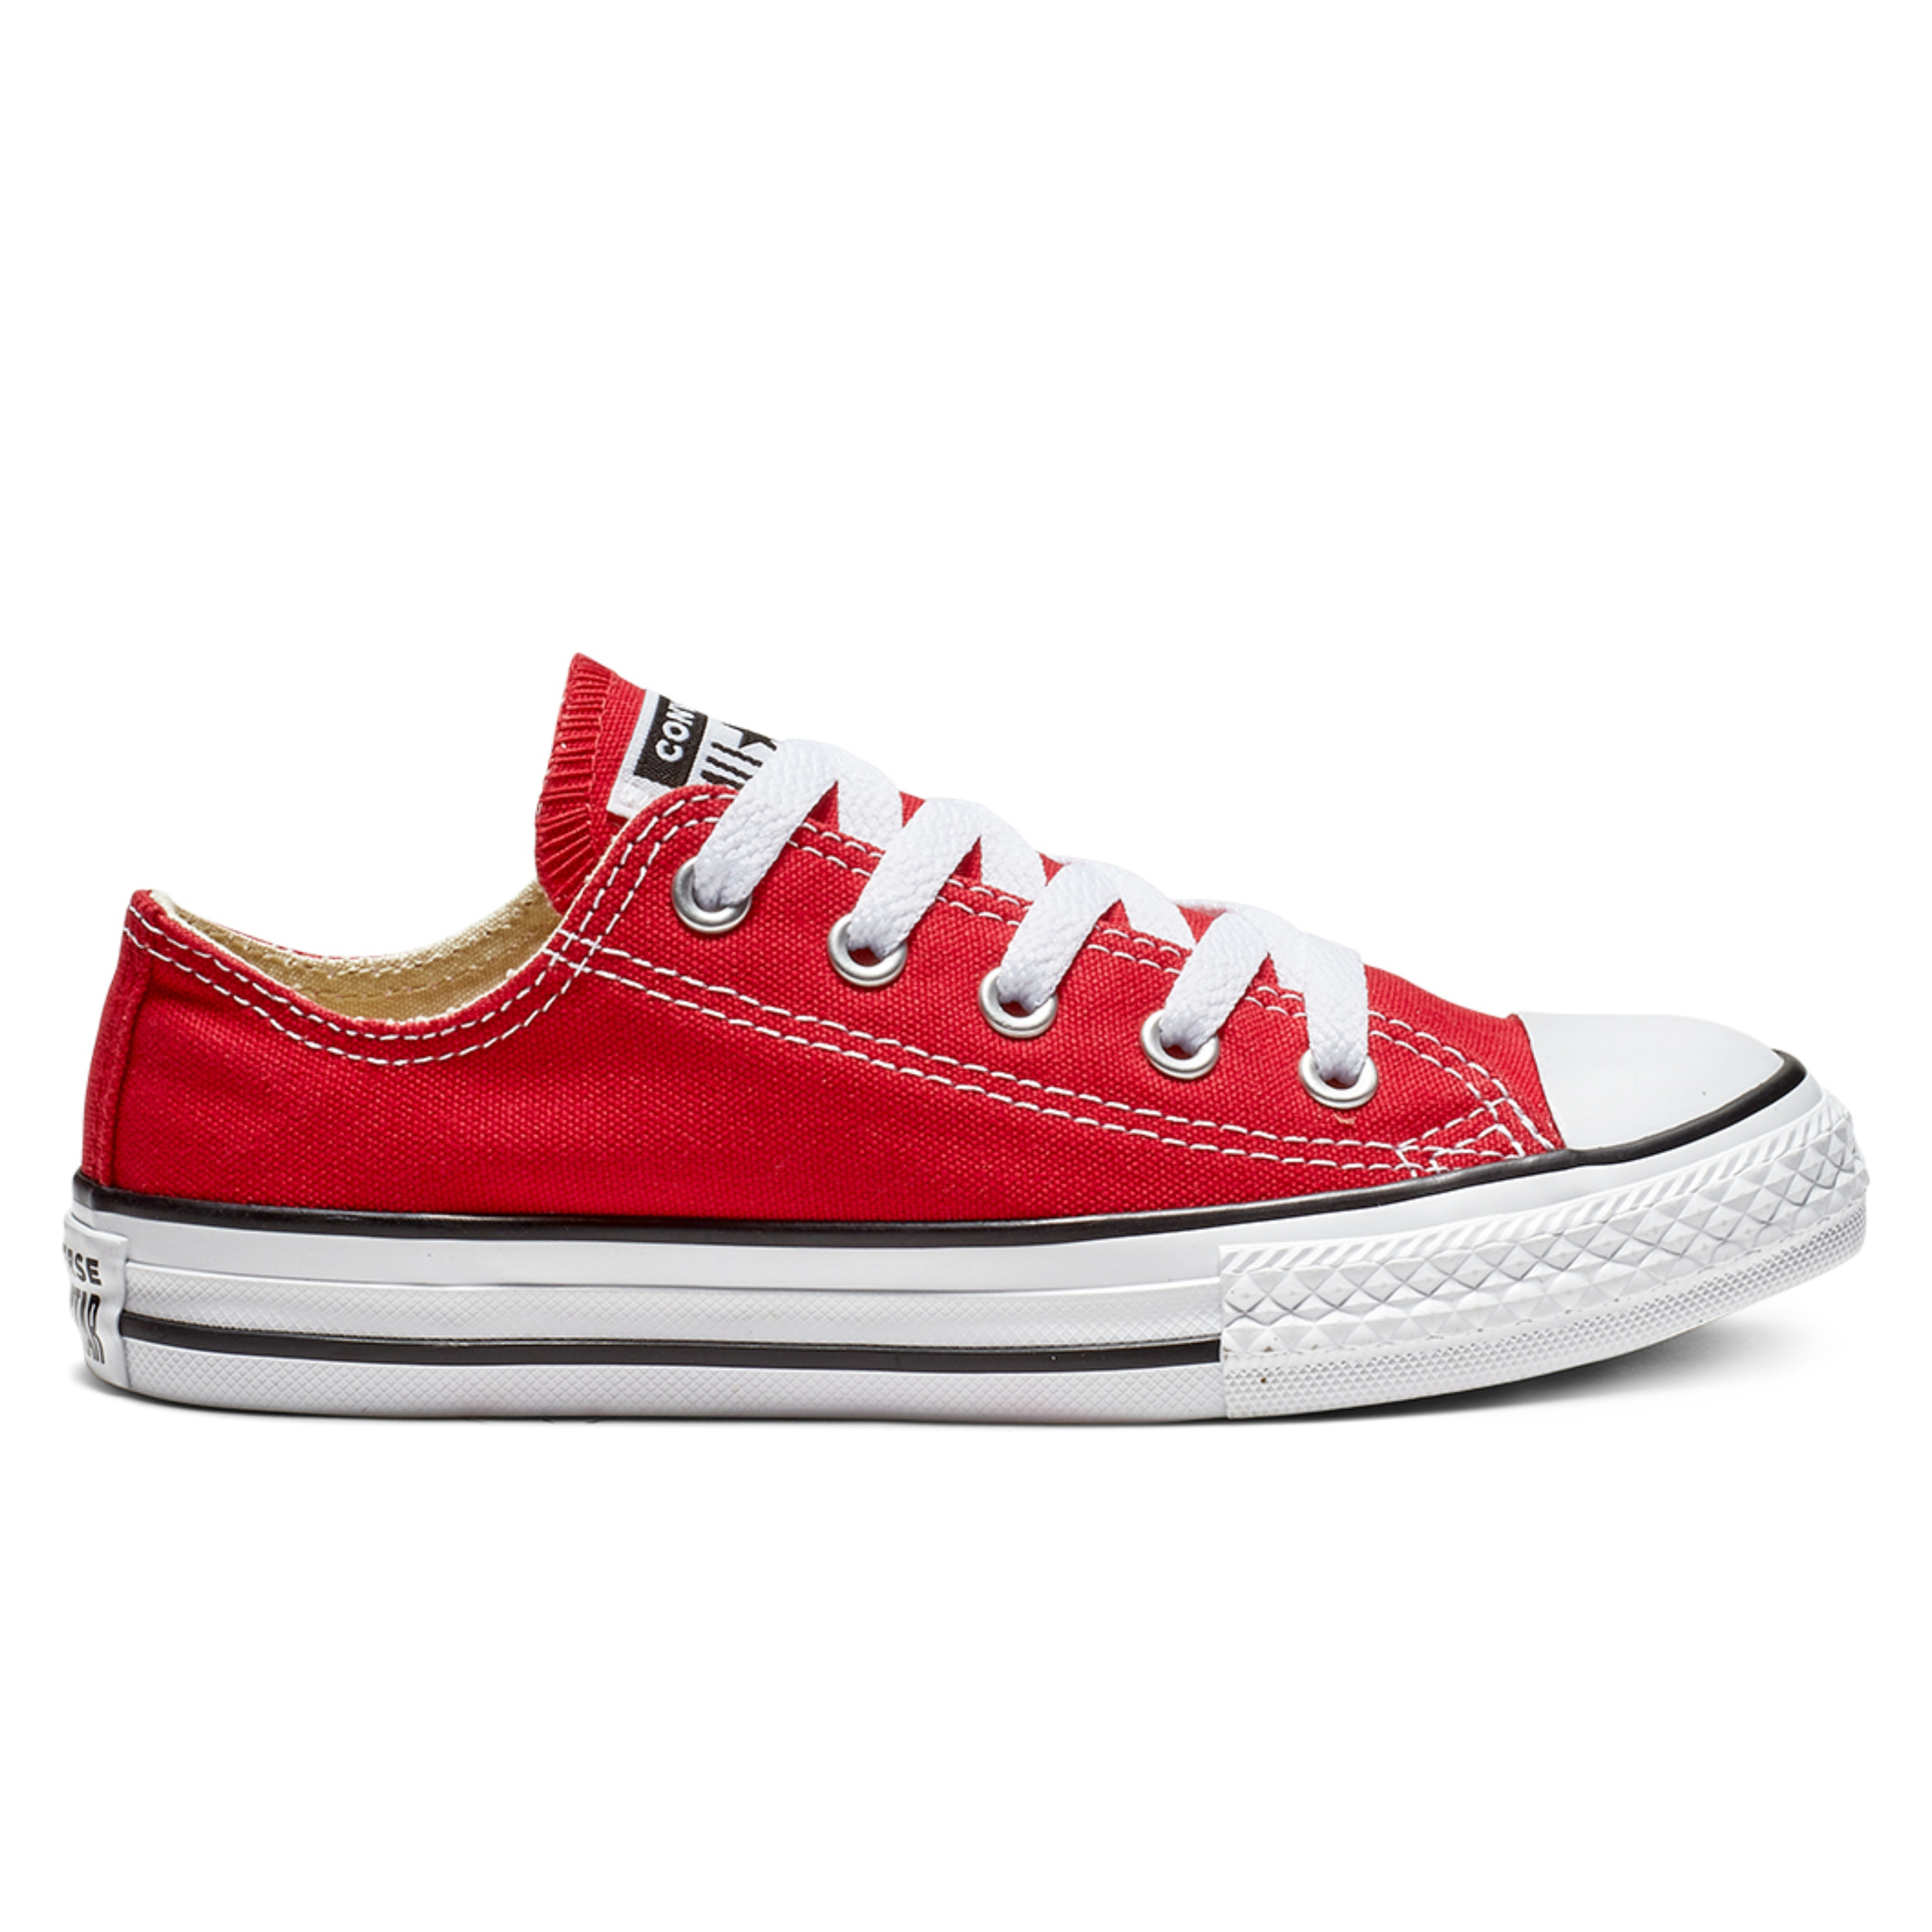 Chuck Taylor All Star Classic Low Top Basket Converse 7 3J236C.600